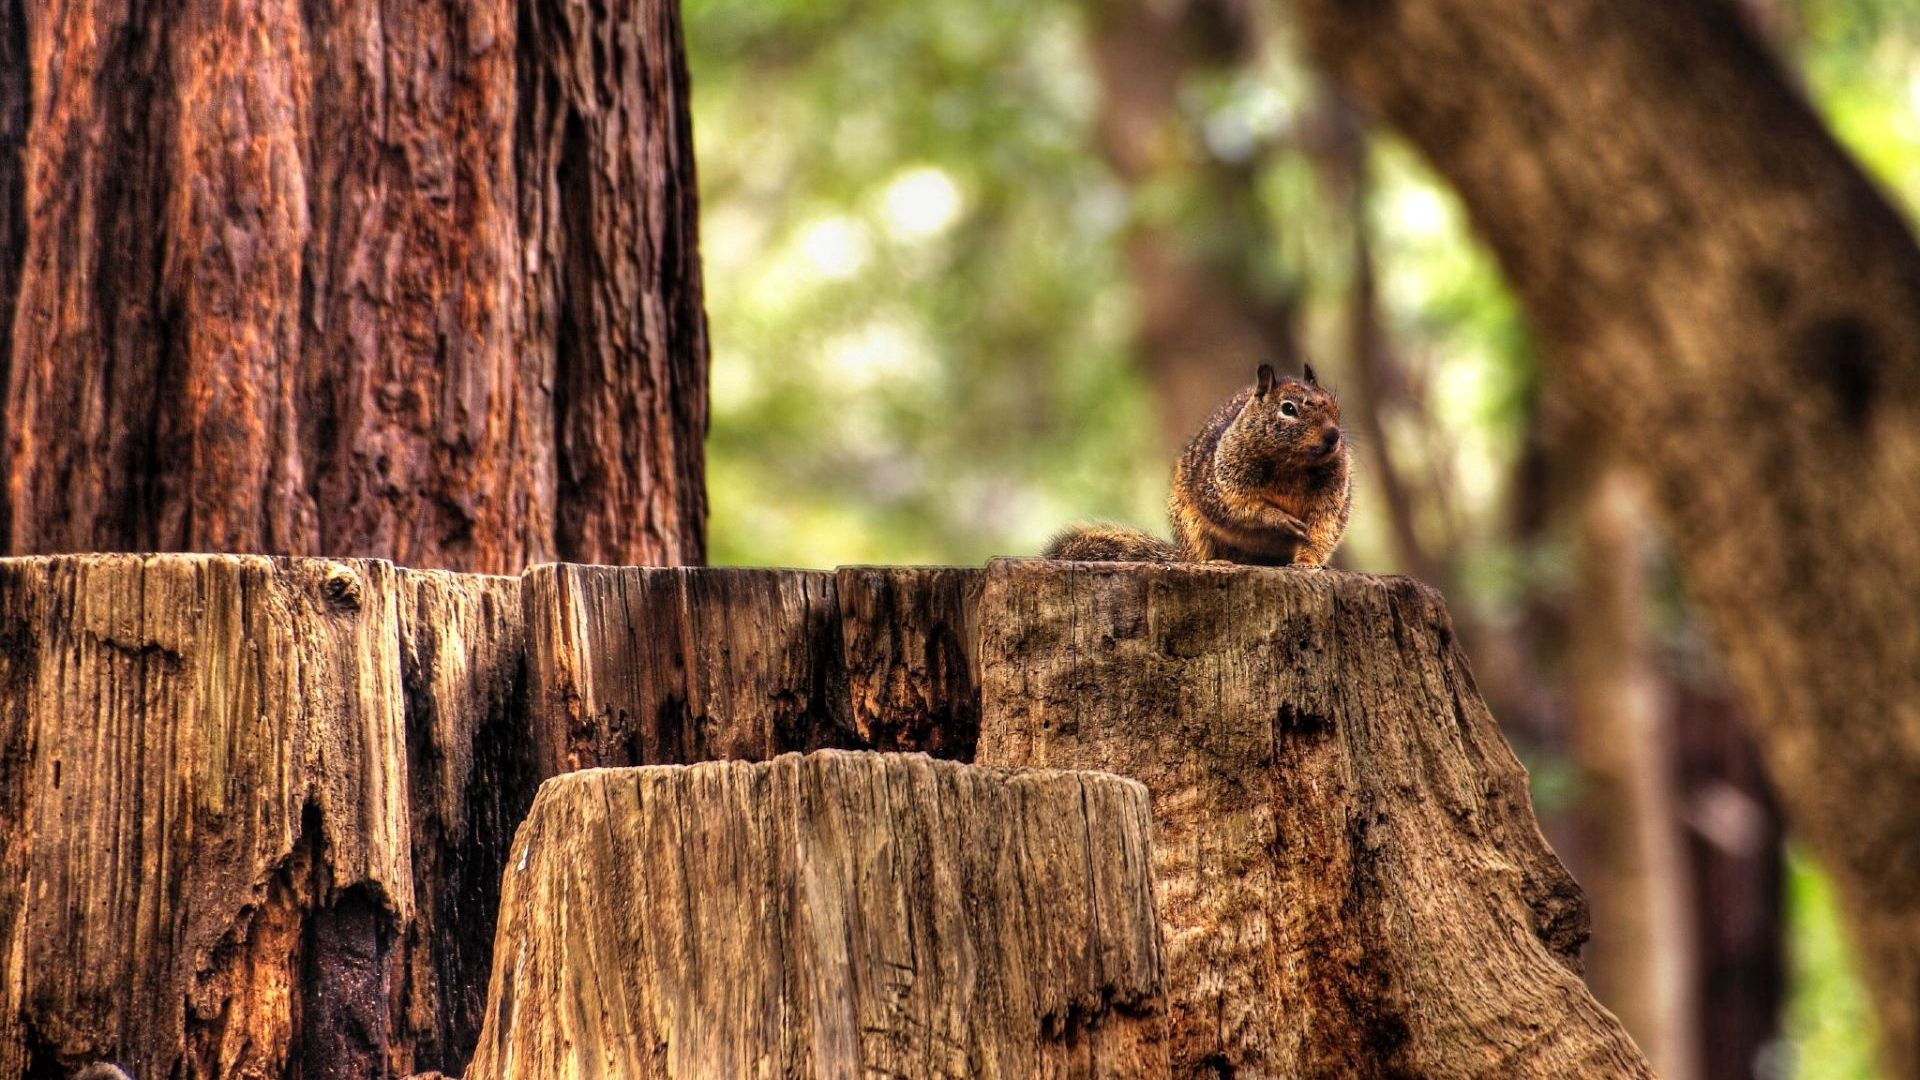 71973 download wallpaper Animals, Squirrel, Hemp, Sit, Animal, Forest screensavers and pictures for free